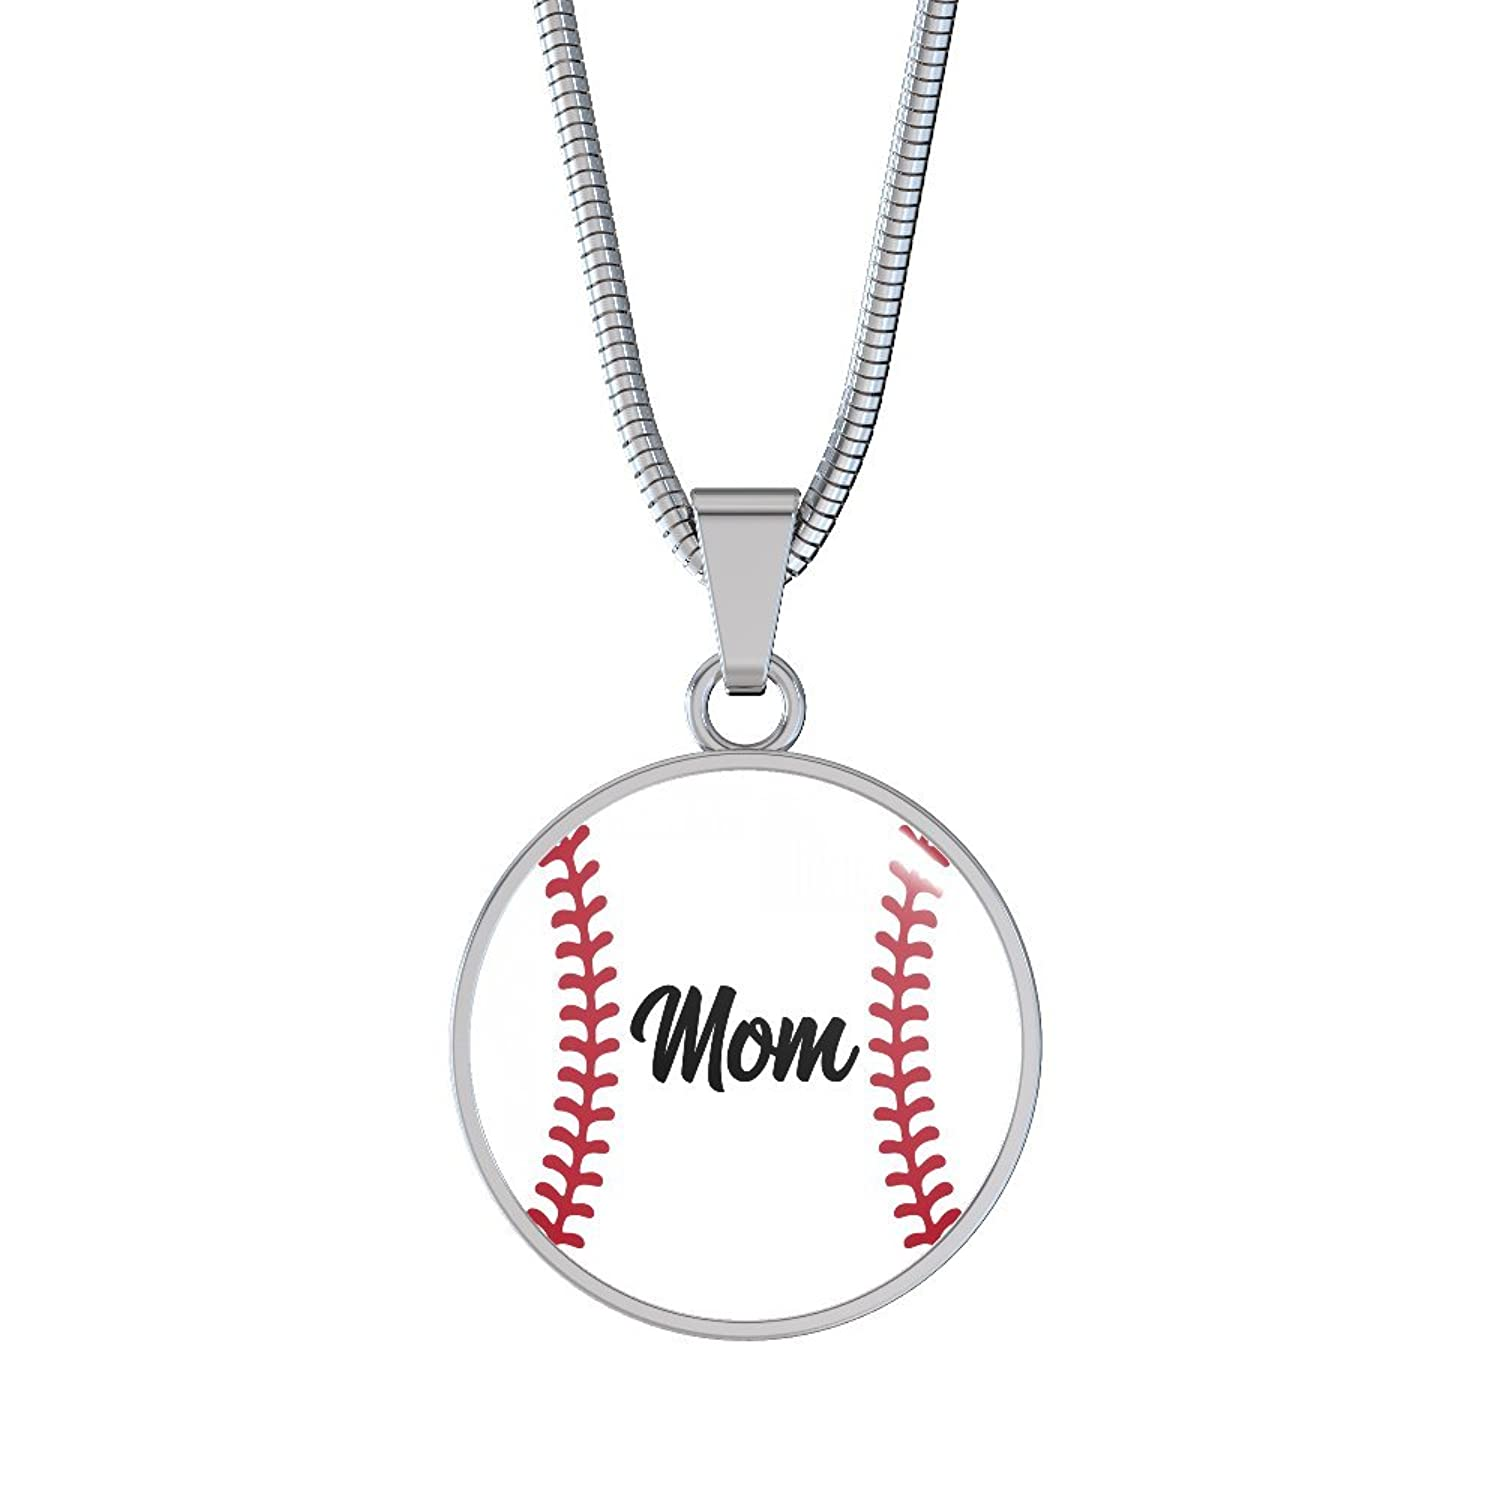 cross index s baseball product catalog religious id charm necklace view pendant tone gold